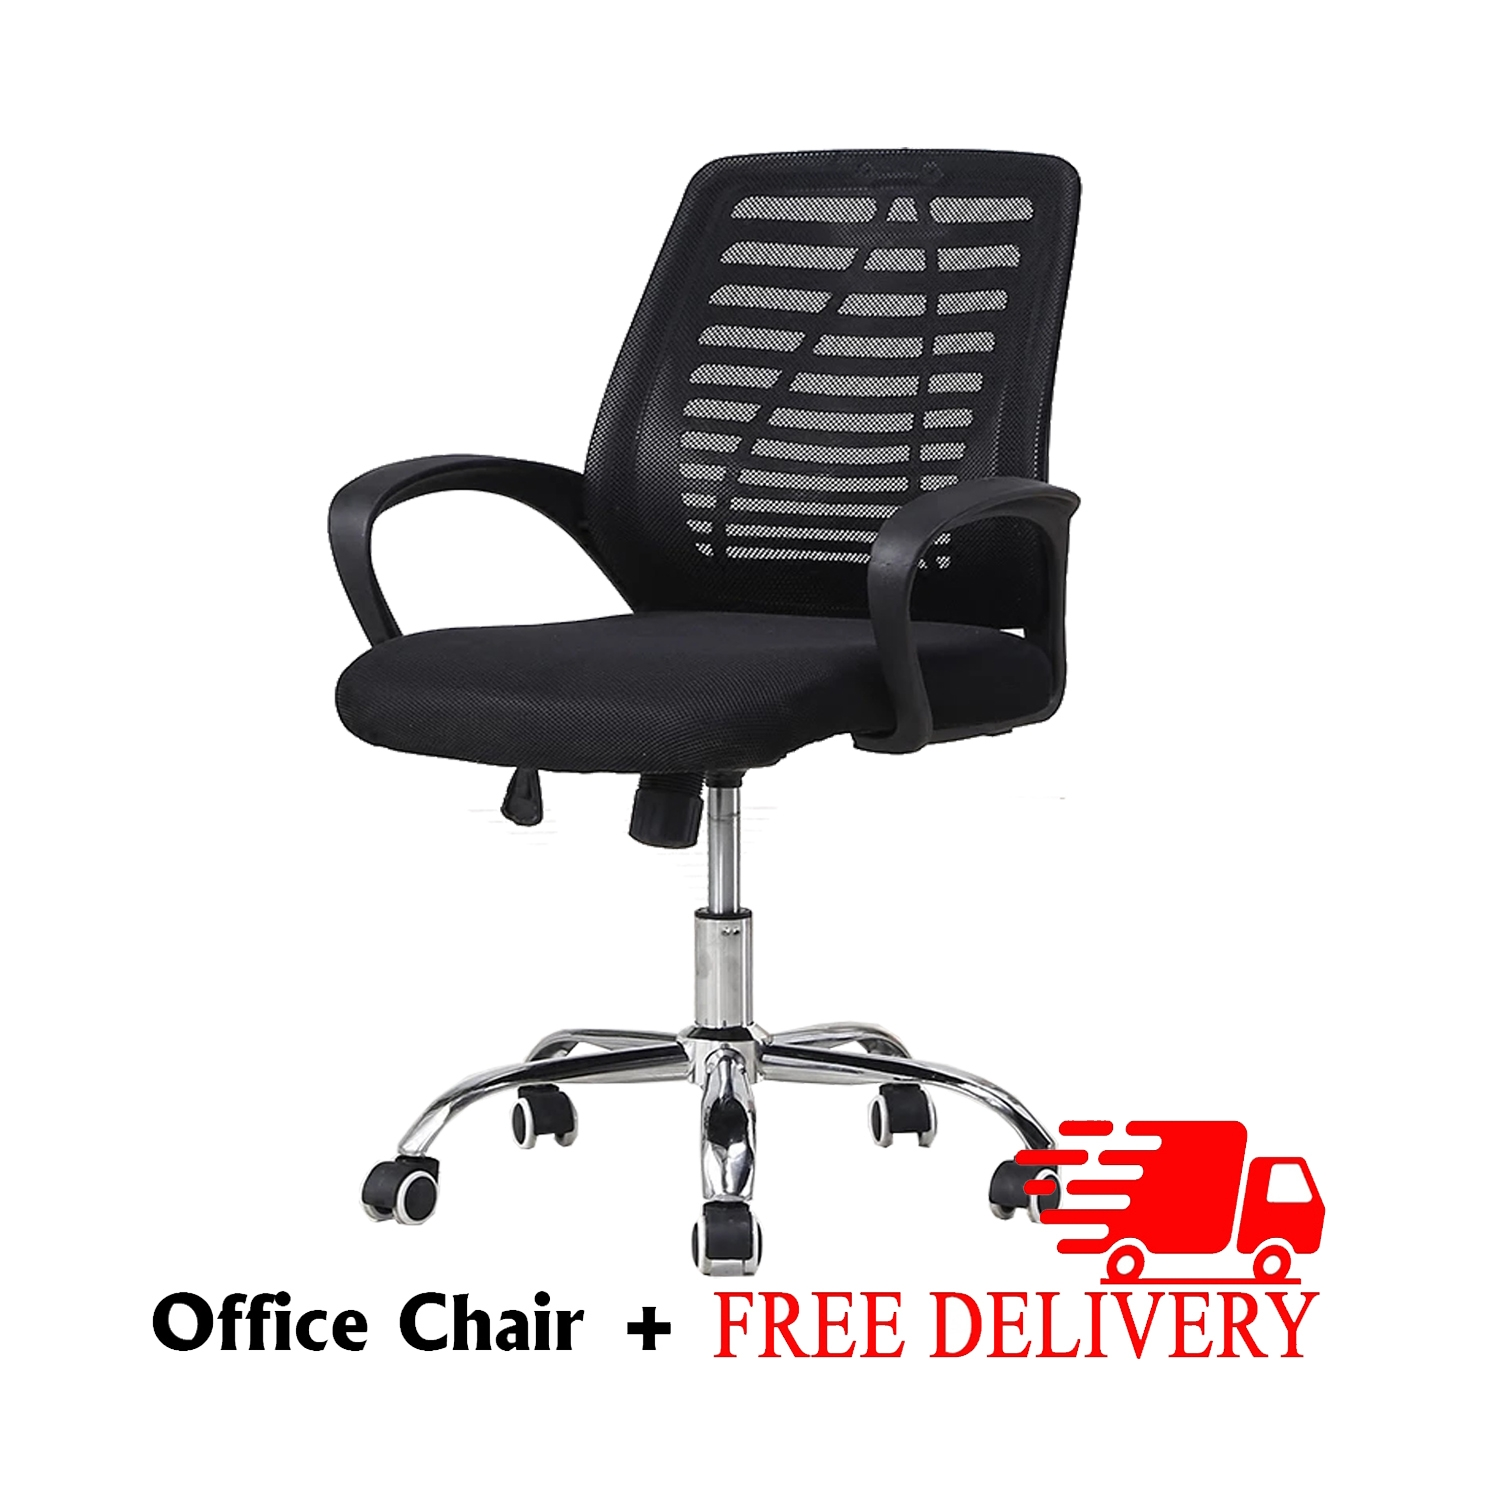 [FurnitureMartSG] Wisteria Office Chair in Black_FREE DELIVERY + FREE INSTALLATION